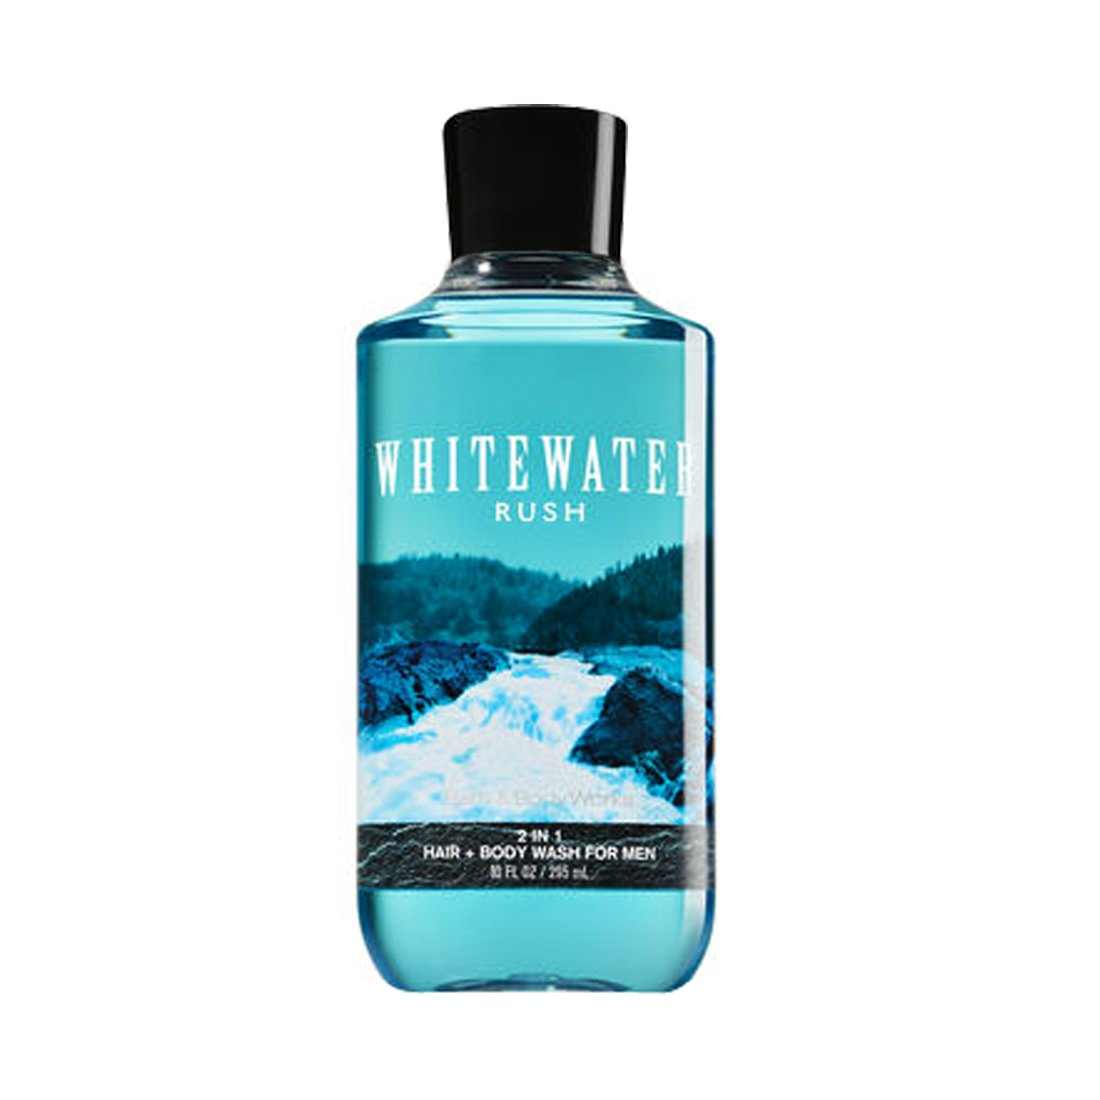 Bath Max 81% OFF Body Max 67% OFF Works Shower Gel 10oz Water Men White For Rush